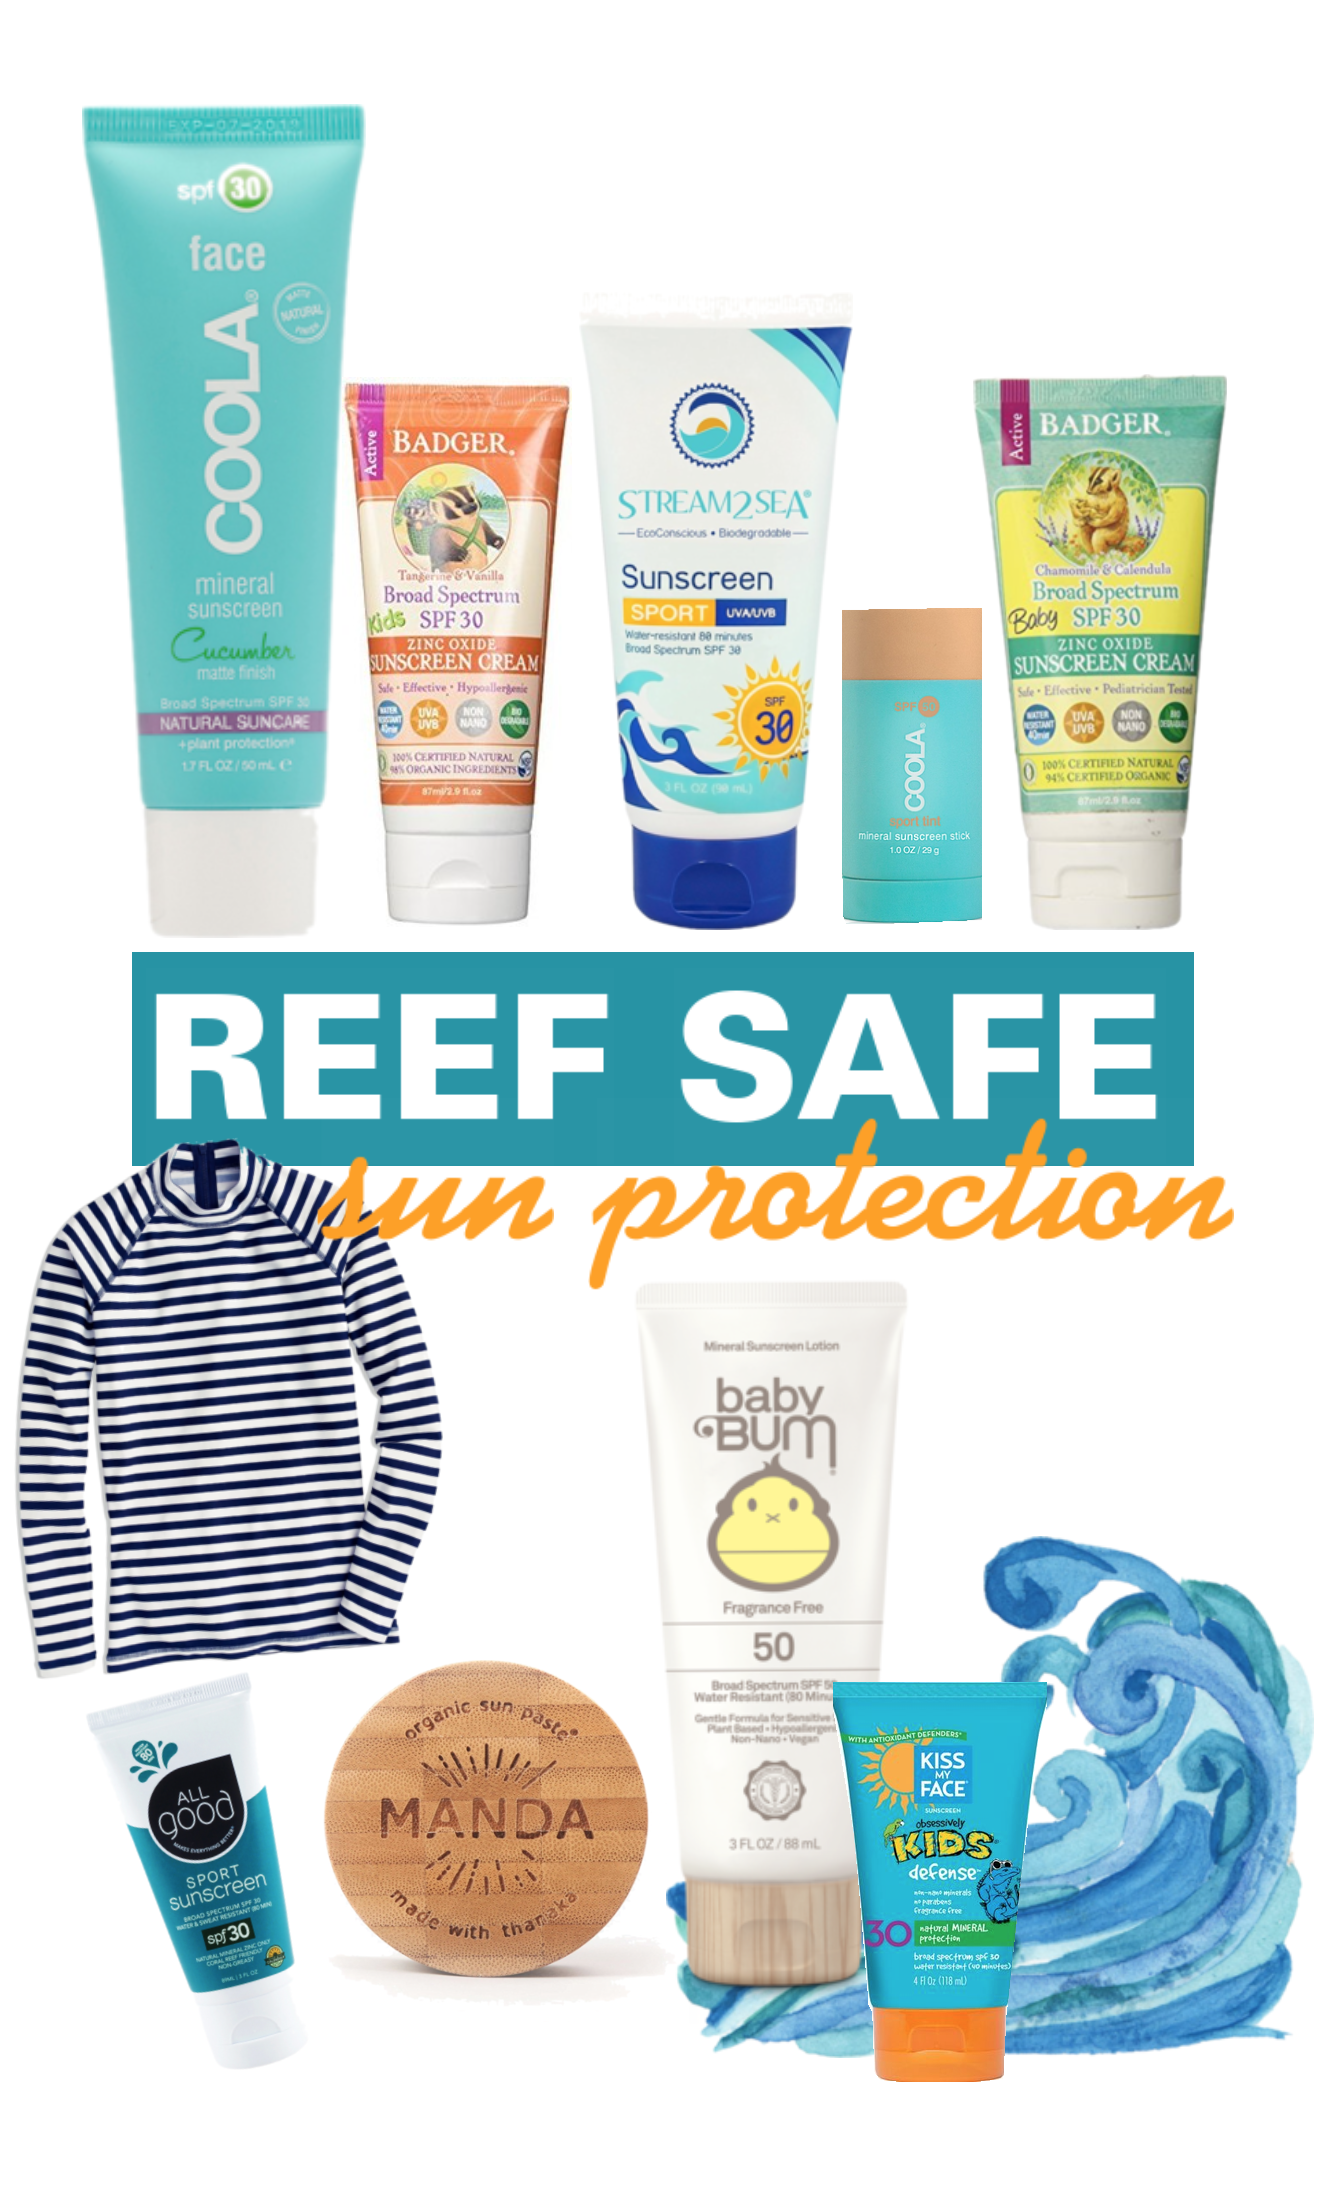 Ultimate Guide To Reef Safe Sunscreen - Best Environmentally Friendly Sunscreen - Reef Safe Sun Protection - Eco-Friendly Sunscreen - Save Our Oceans - Hawaii Sunscreen - Communikait by Kait Hanson